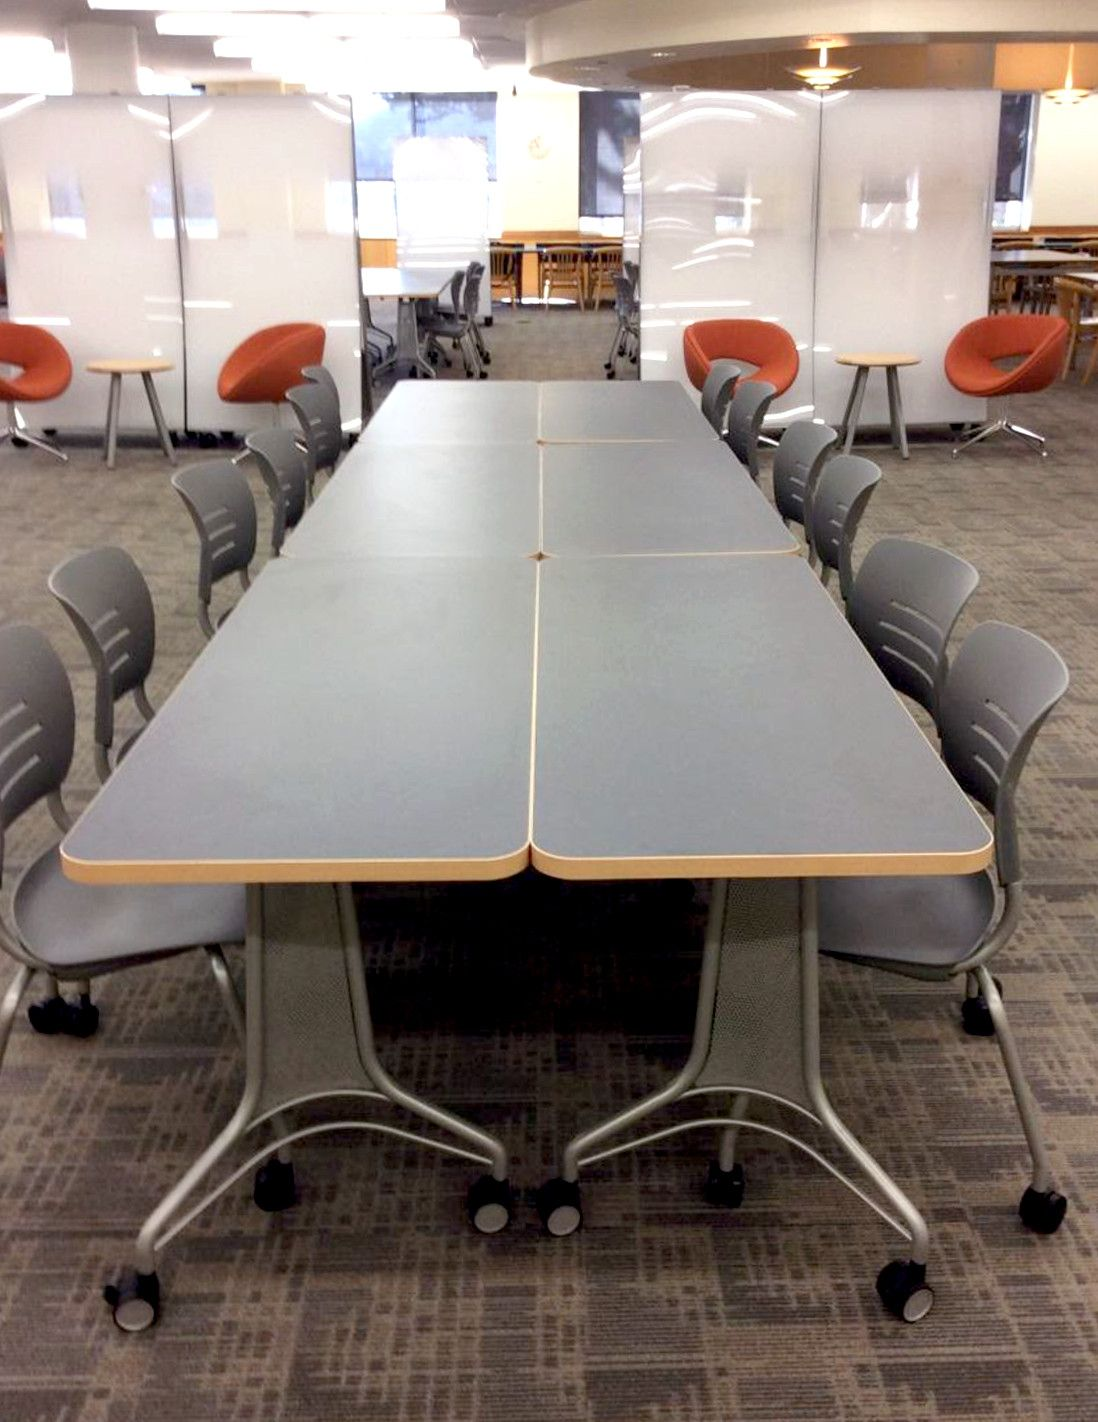 Kay Twelve Com Combine Smaller Tables Together To Form One Large